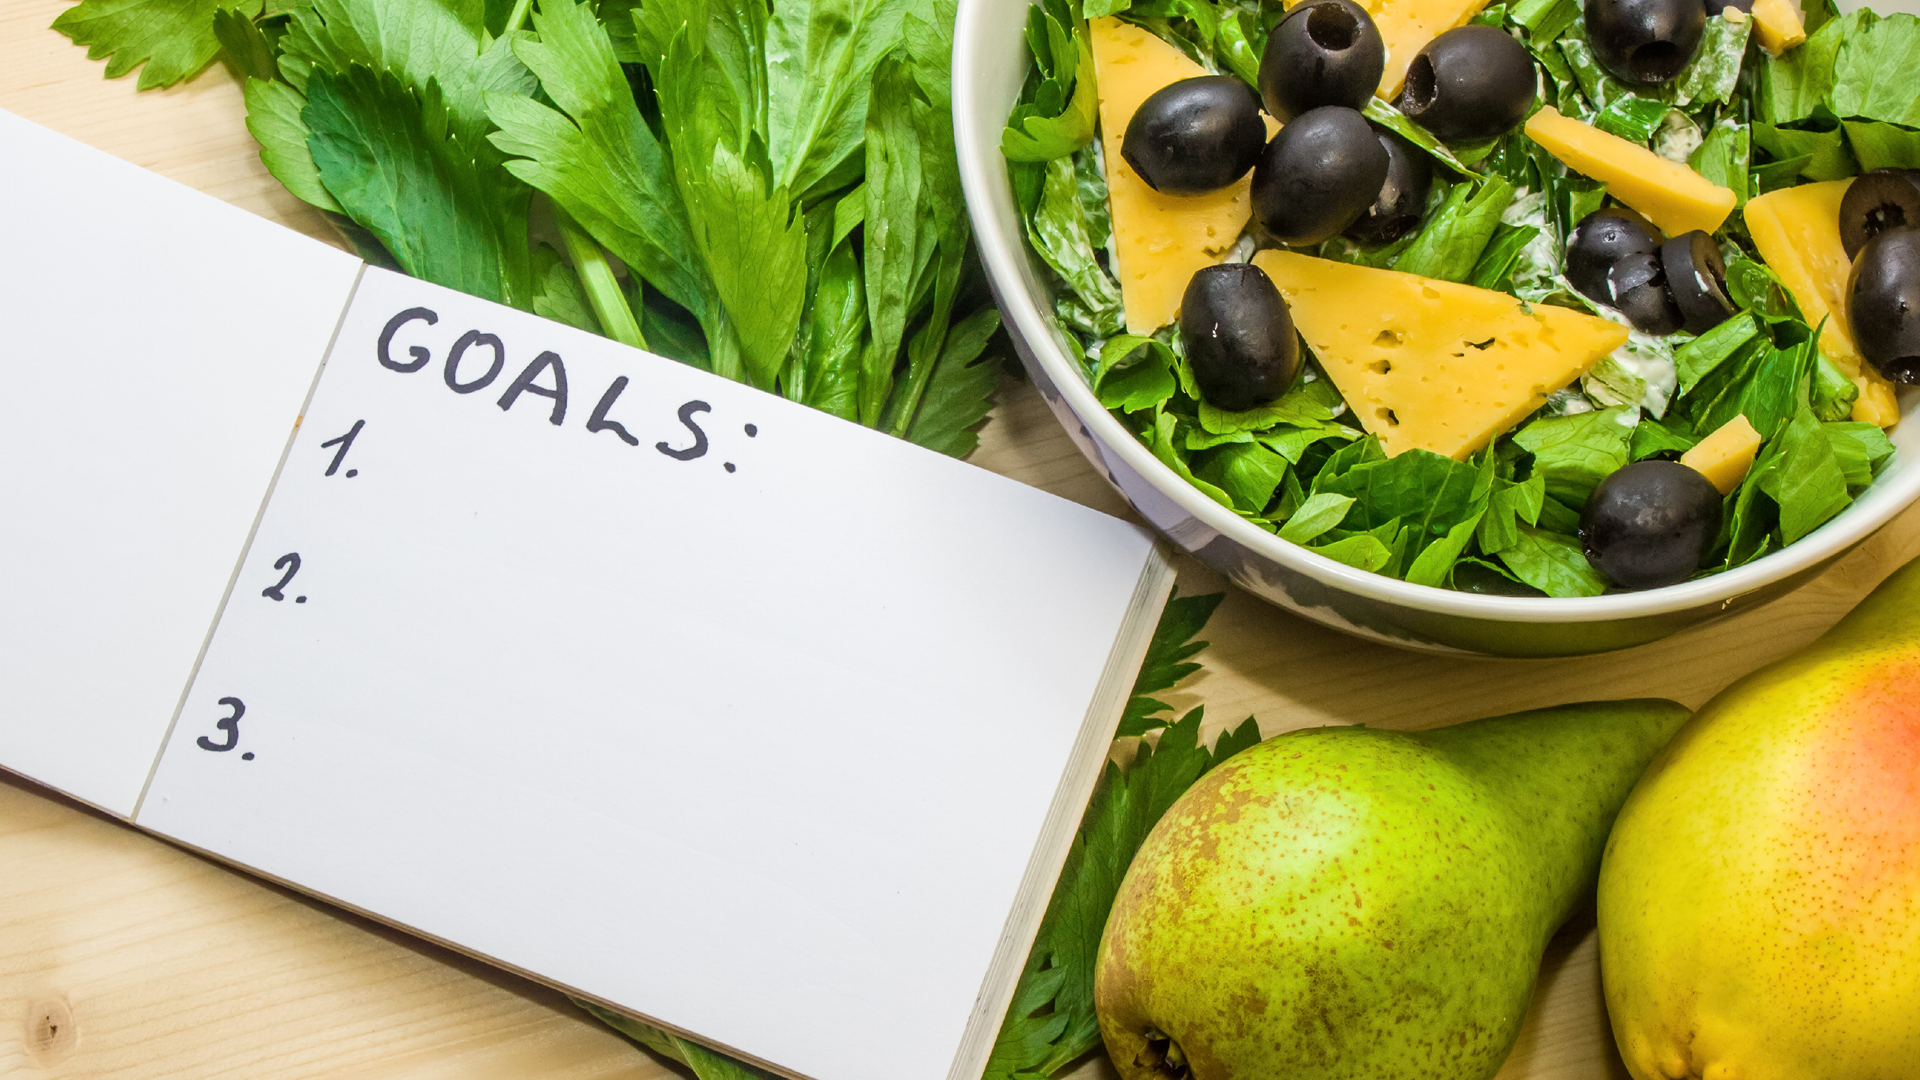 What Type of Diet Works Best for Your New Year's Resolution?